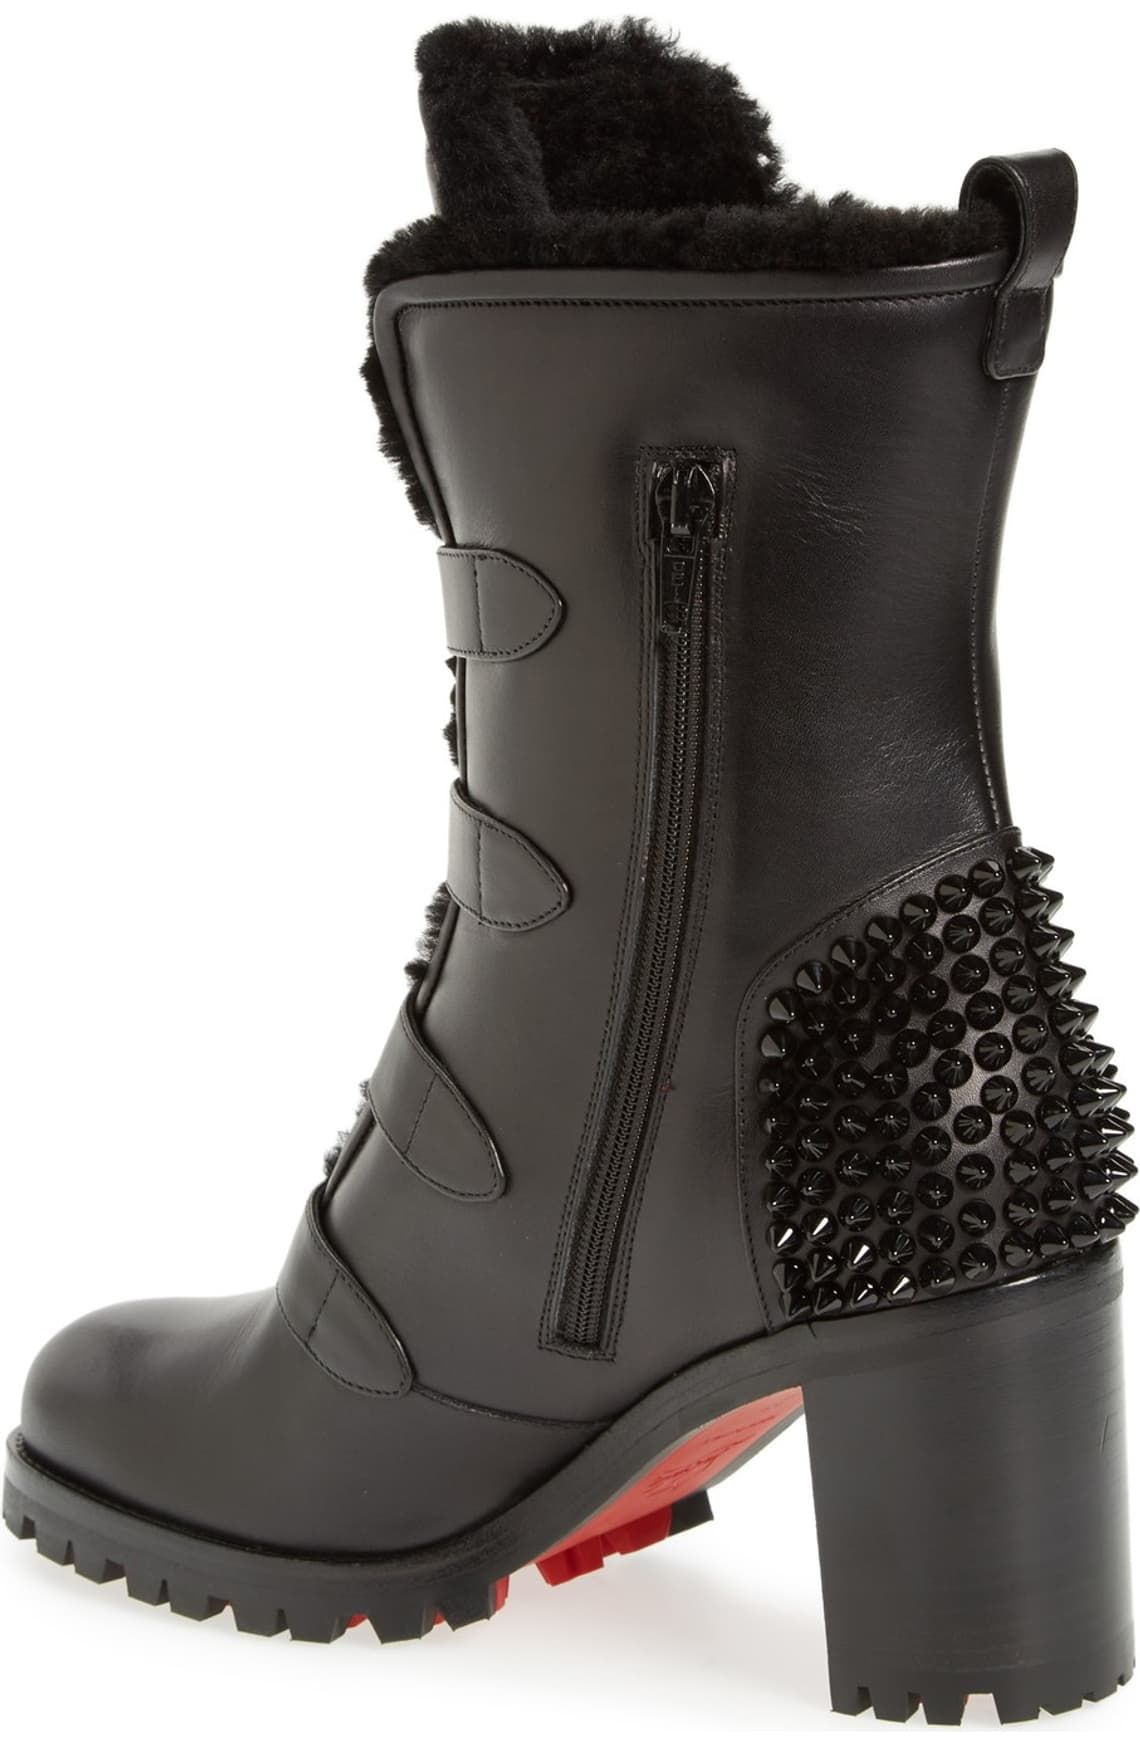 Christian louboutin boots, Buckle boots